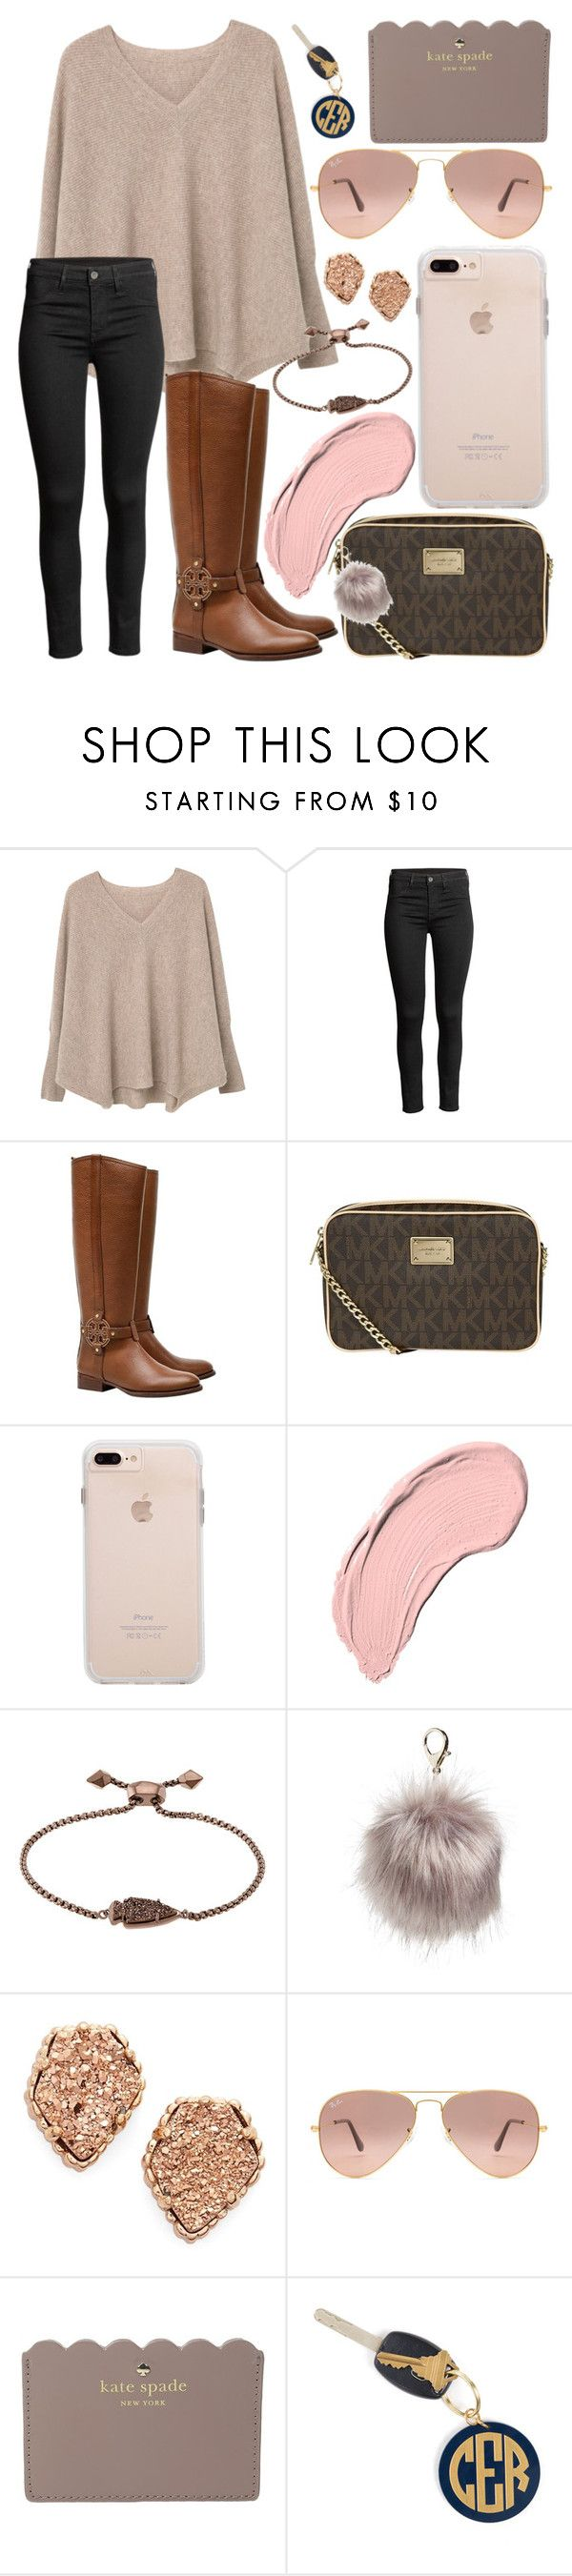 """""""It's cold outside"""" by jadenriley21 ❤ liked on Polyvore featuring MANGO, Tory Burch, MICHAEL Michael Kors, NYX, Kendra Scott, Nila Anthony, Ray-Ban, Kate Spade and Hartford"""